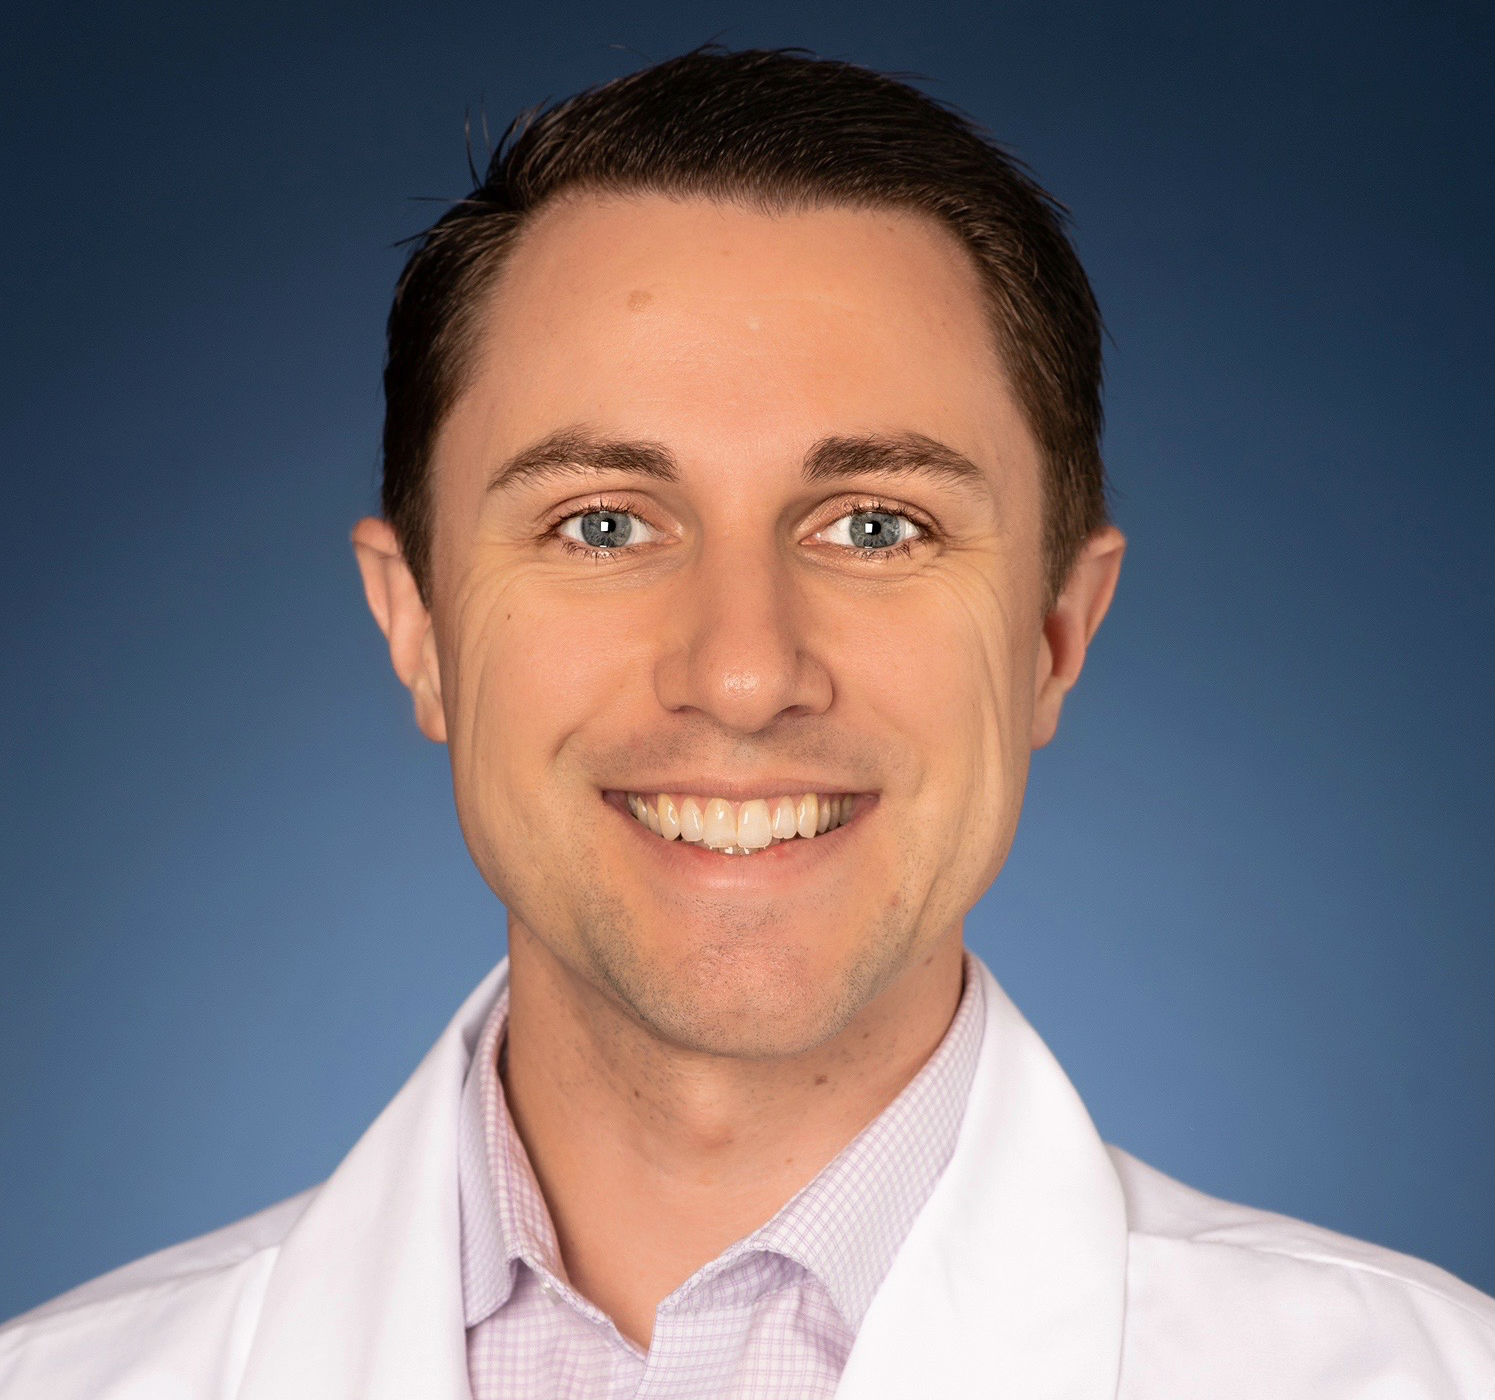 WesternU alumnus is OMM Outstanding Resident of the Year